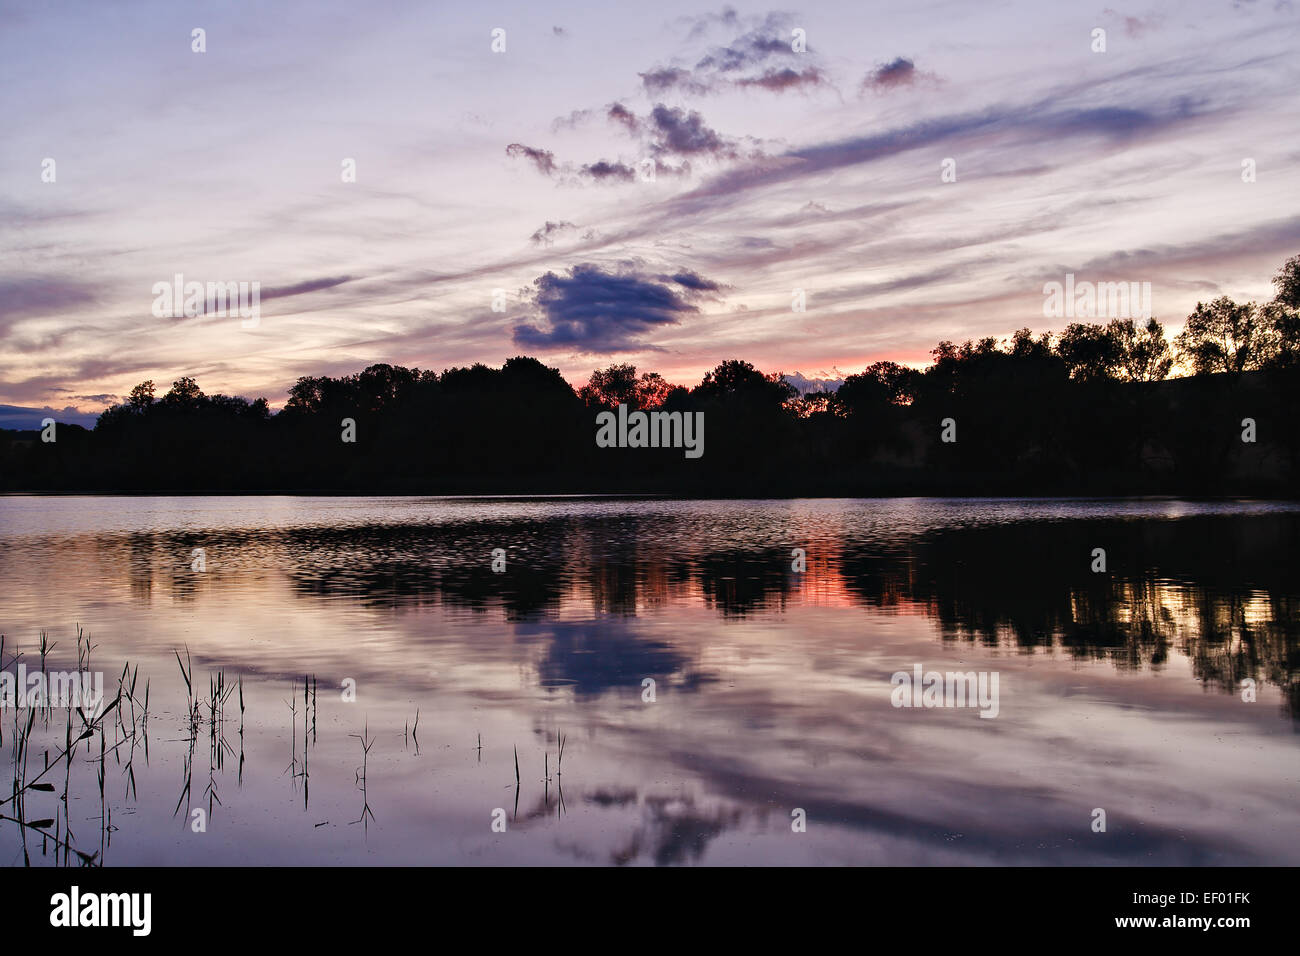 Evening at the lake. - Stock Image